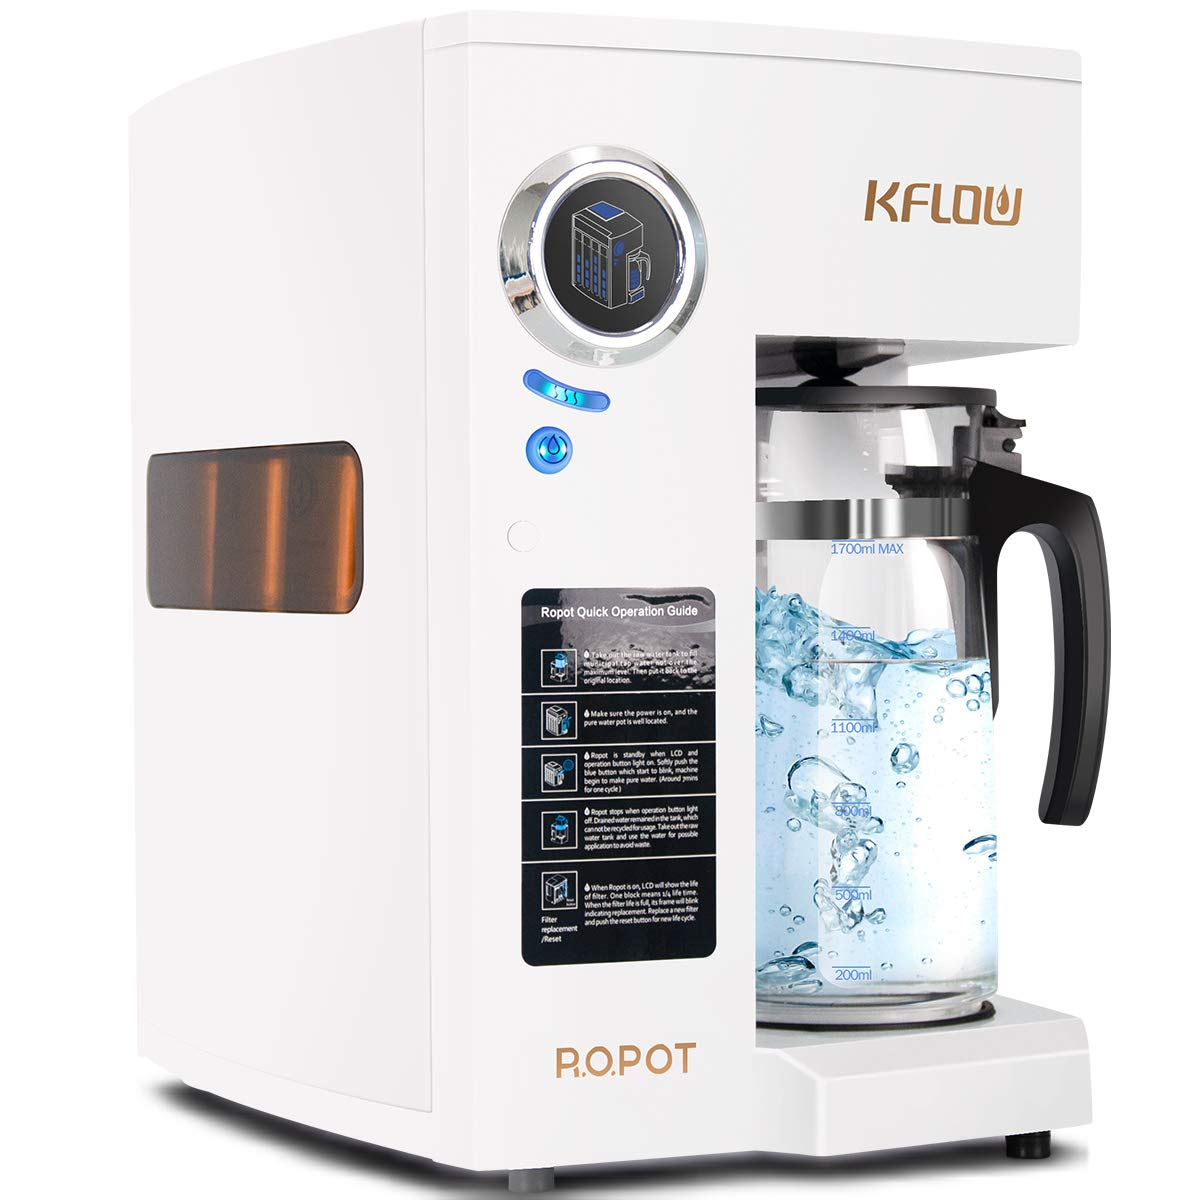 KFLOW Reverse Osmosis Water Filtration System, Countertop RO Water Filter with Exclusive 4 - Stage, Alkaline Drinking Water Purifier (Zero Installation & No Plumbing Required)